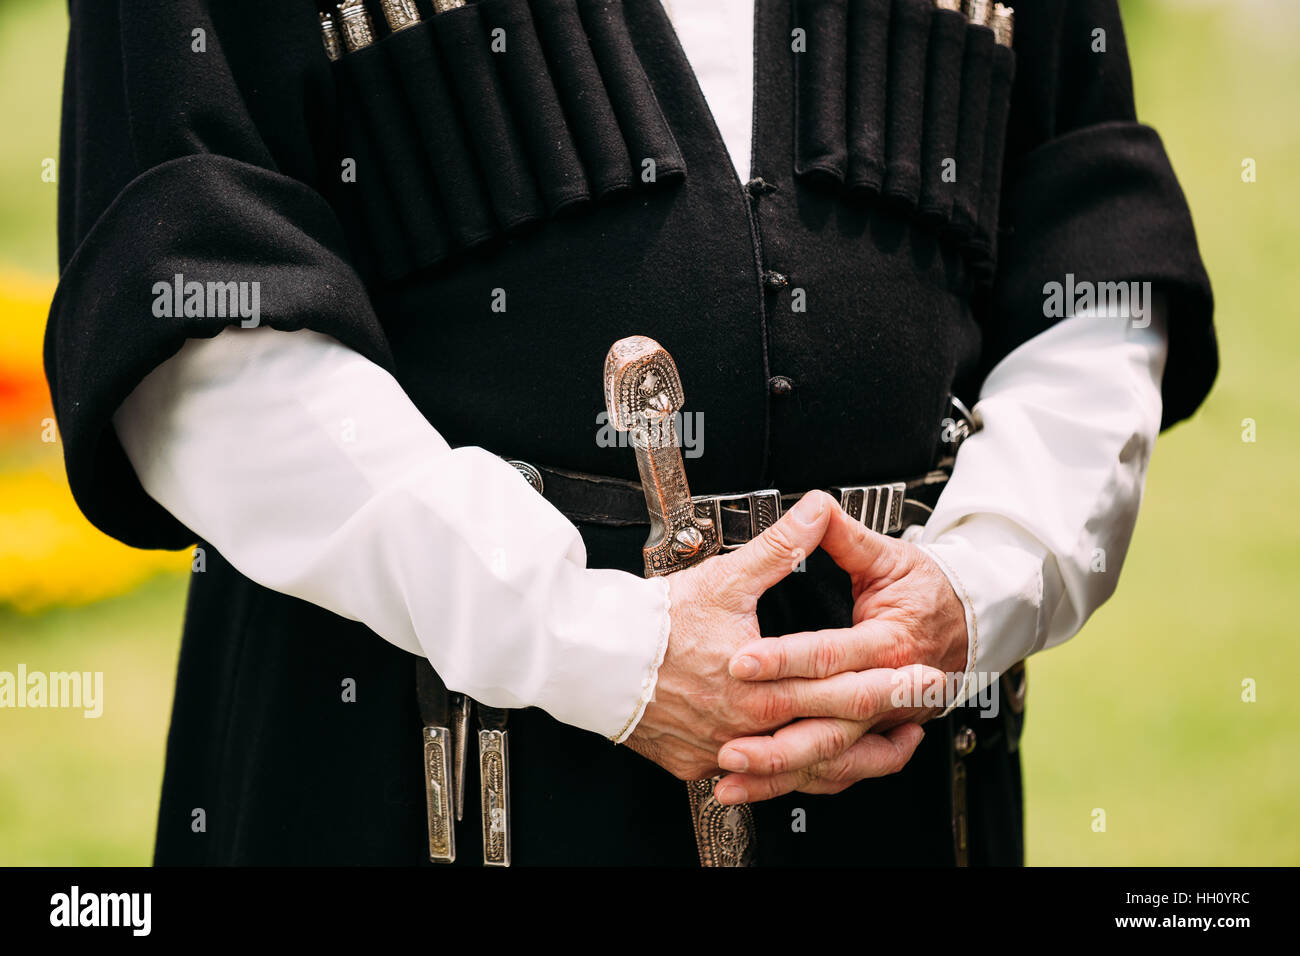 Close Up Hands Of Elder Georgian Man In National Clothes. Culture Of Georgia Country. On His Belt Dagger Hanging. - Stock Image